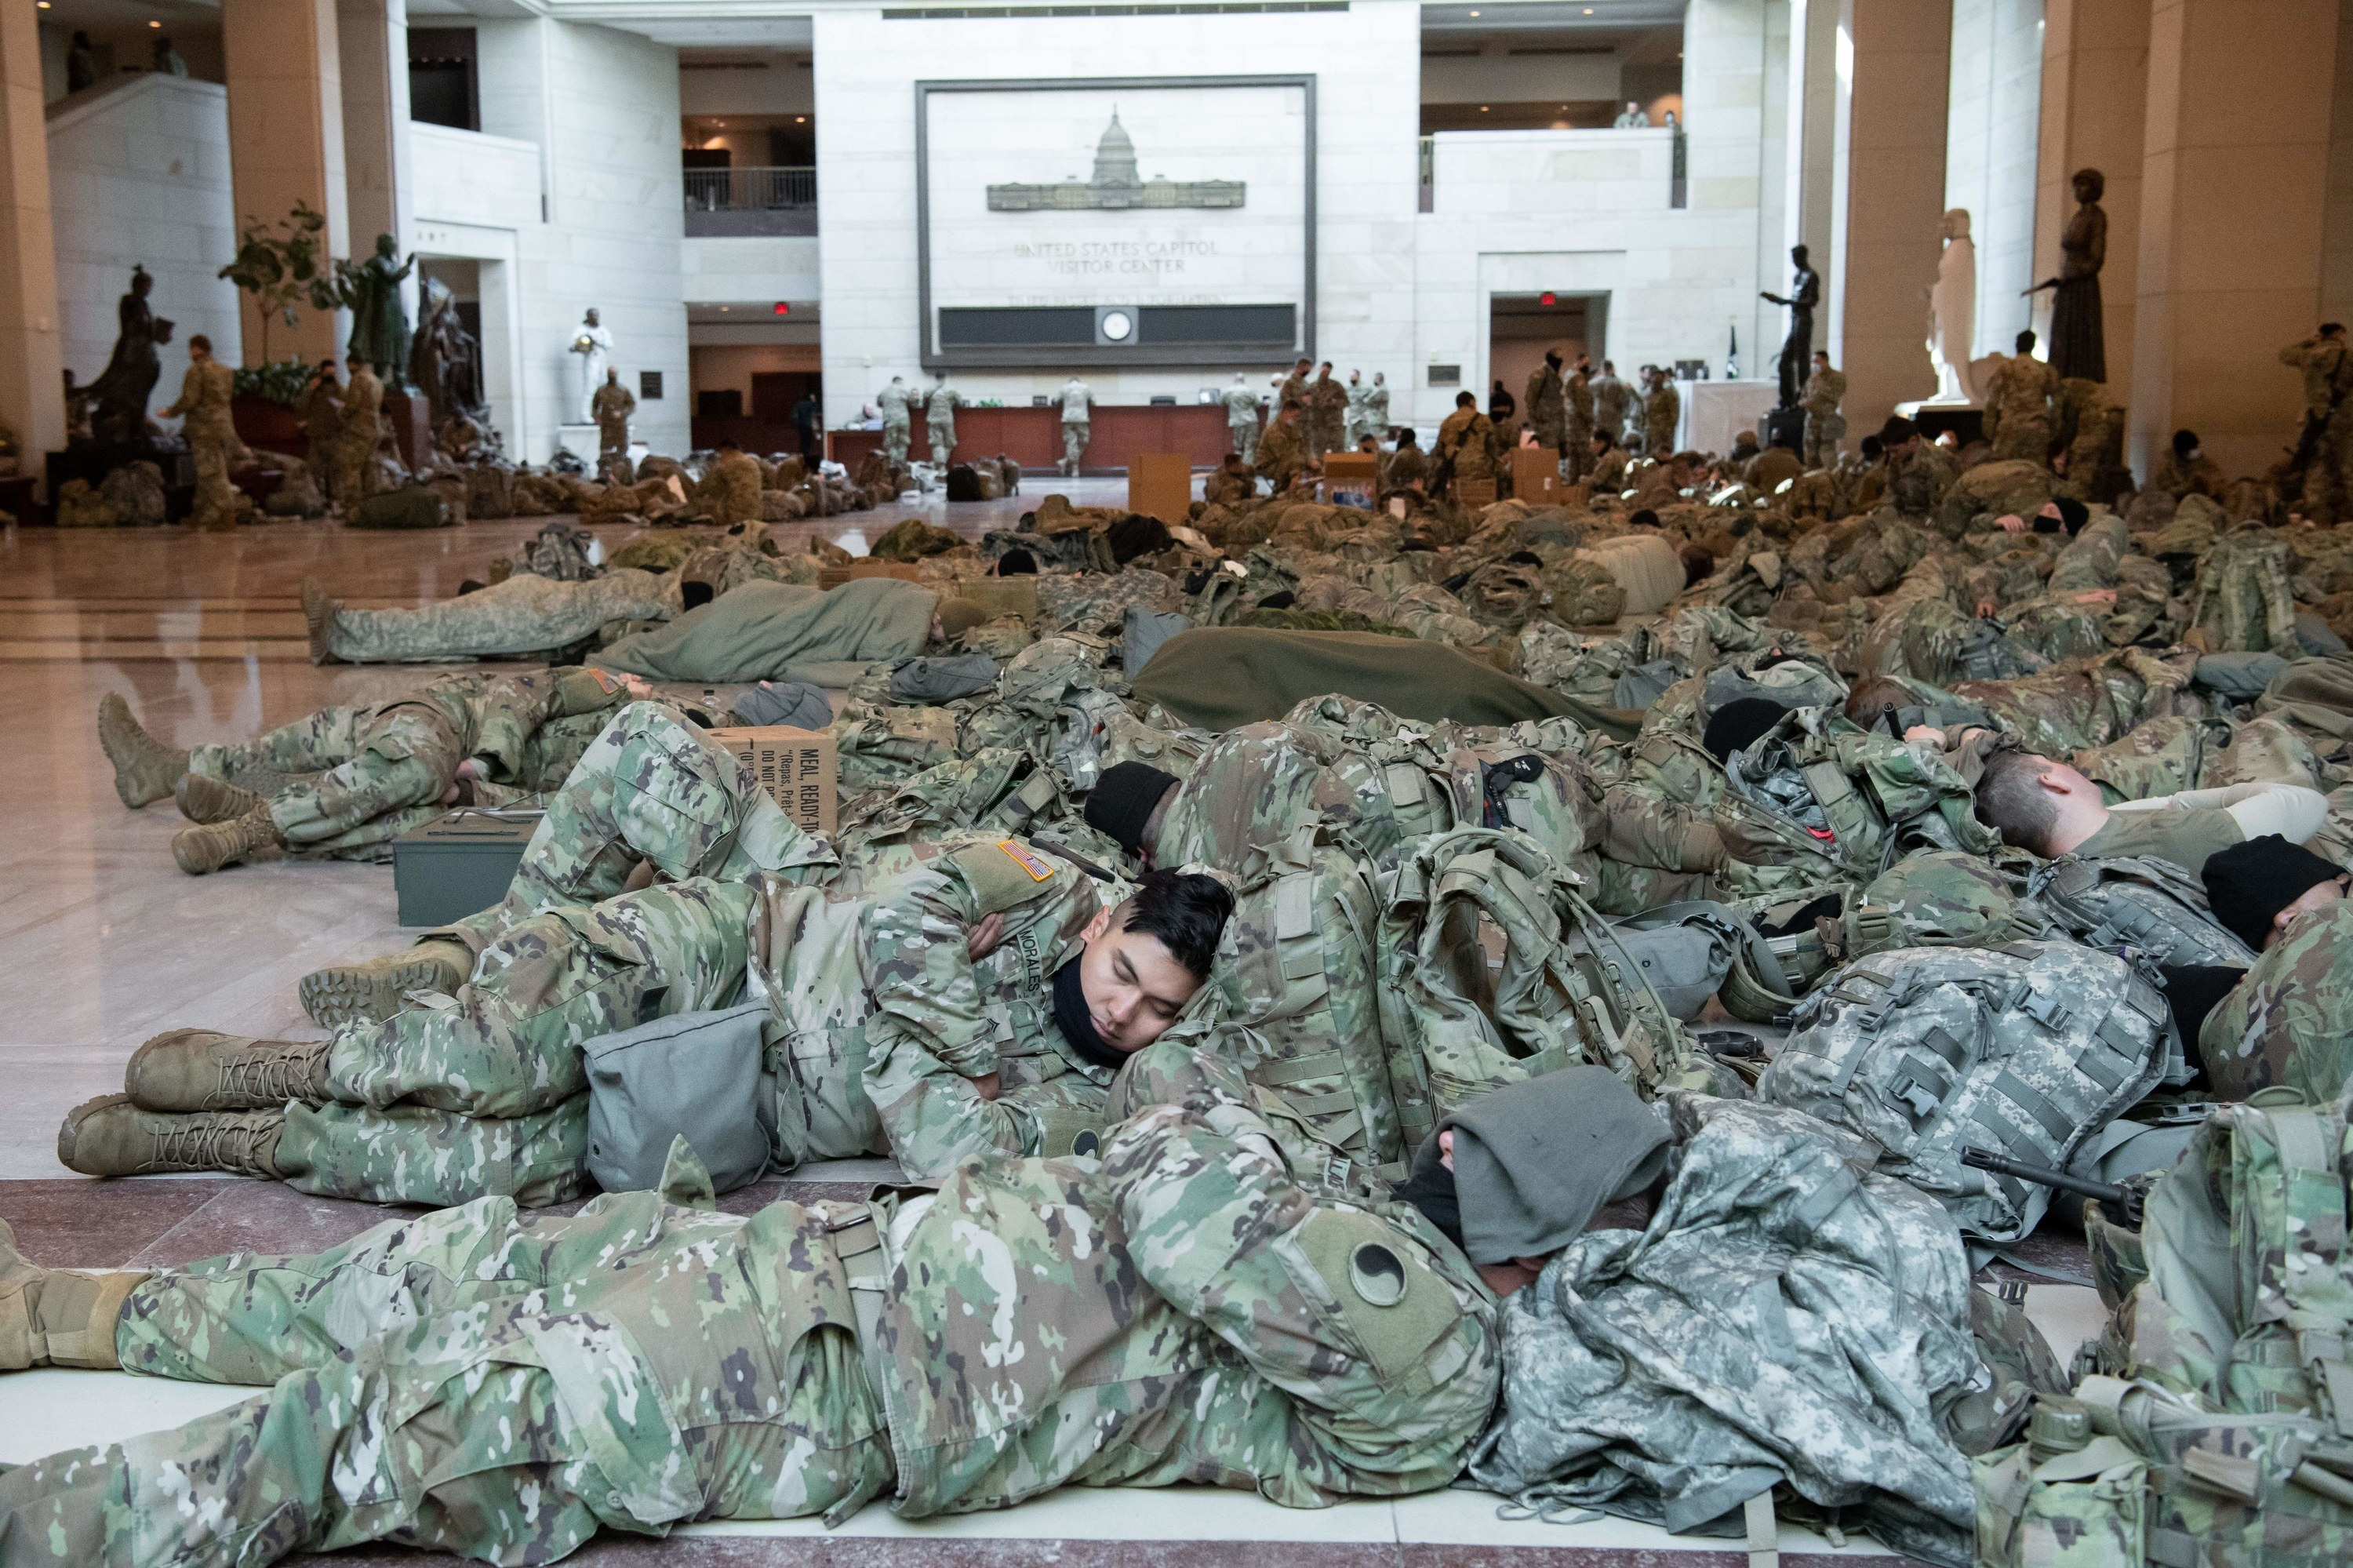 The Capitol is filled with troops sleeping on the floor